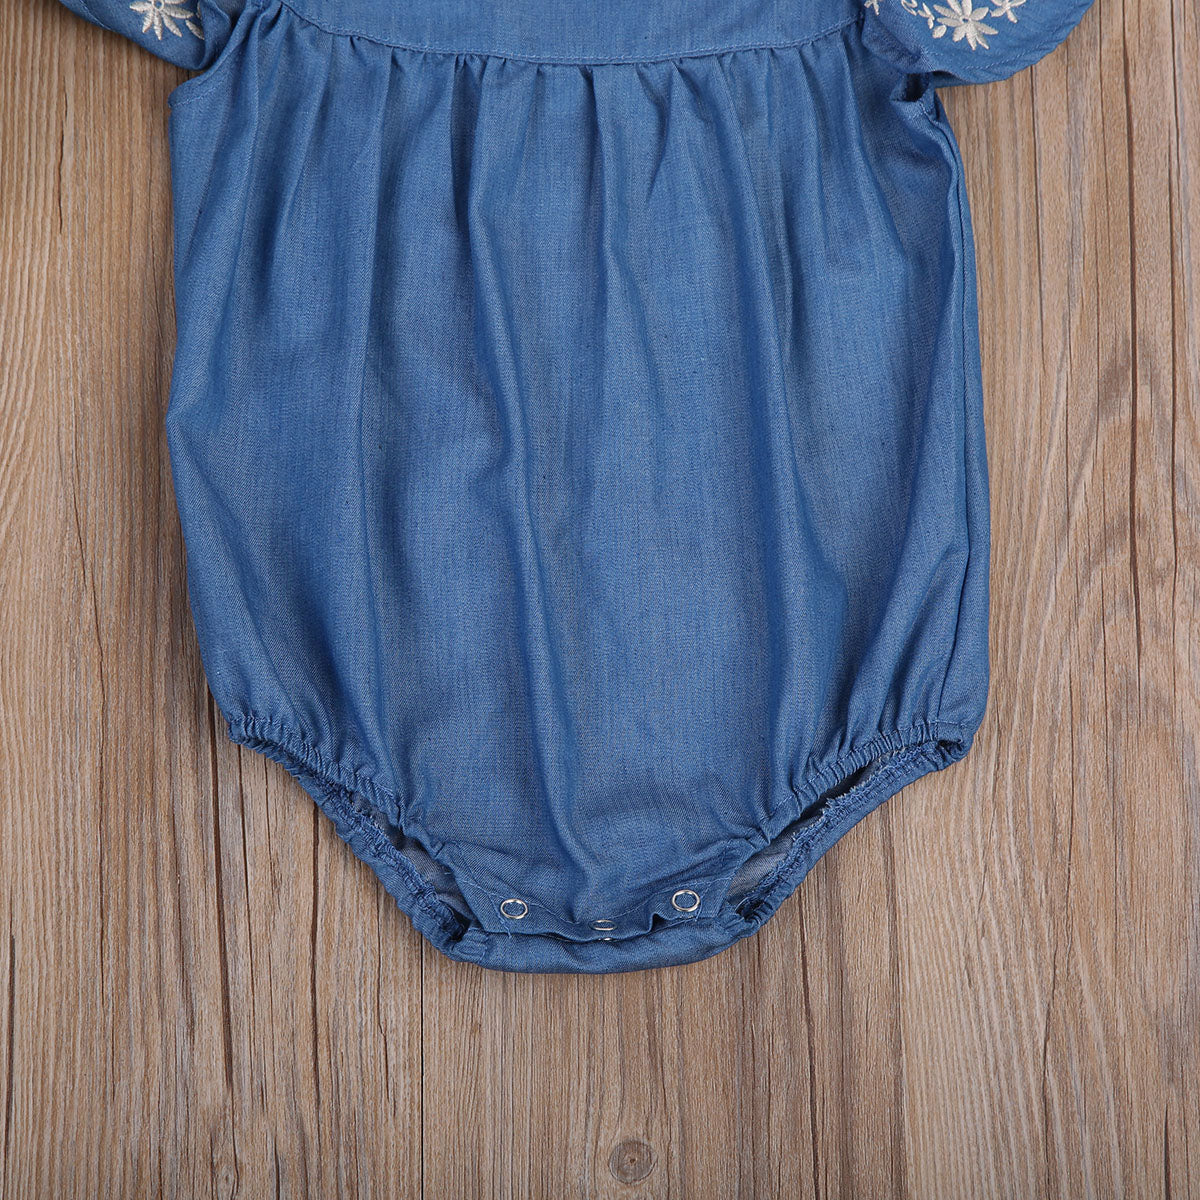 Flying Sleeve Baby Clothing Newborn Baby Girls Denim Romper Jumpsuit 0 24M